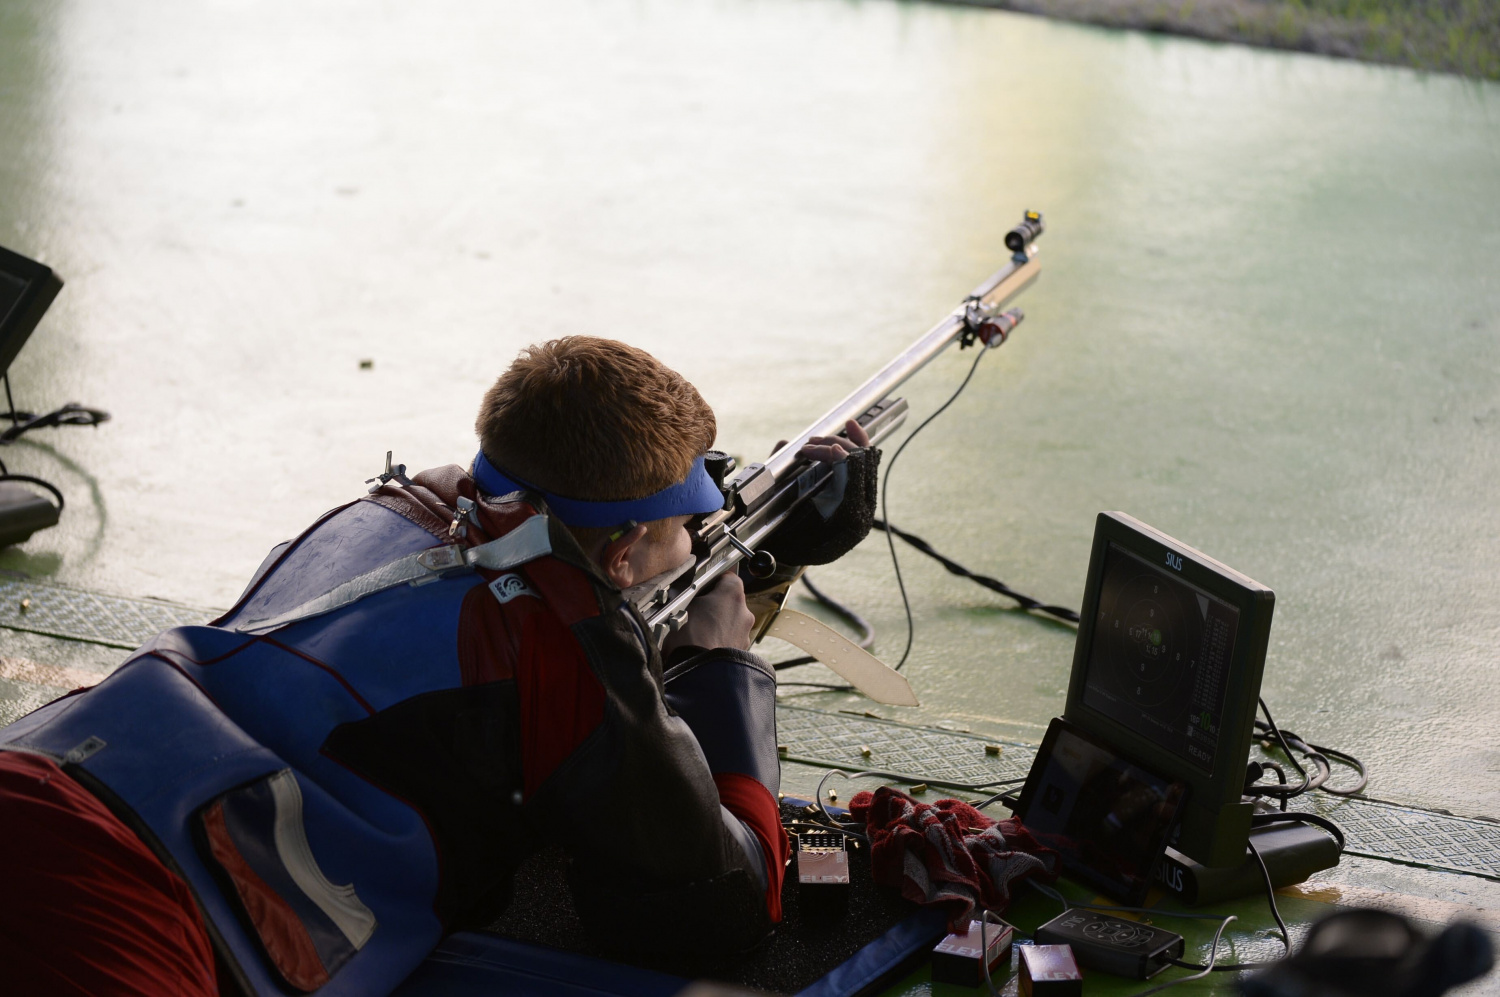 Olympic Games 50m Rifle